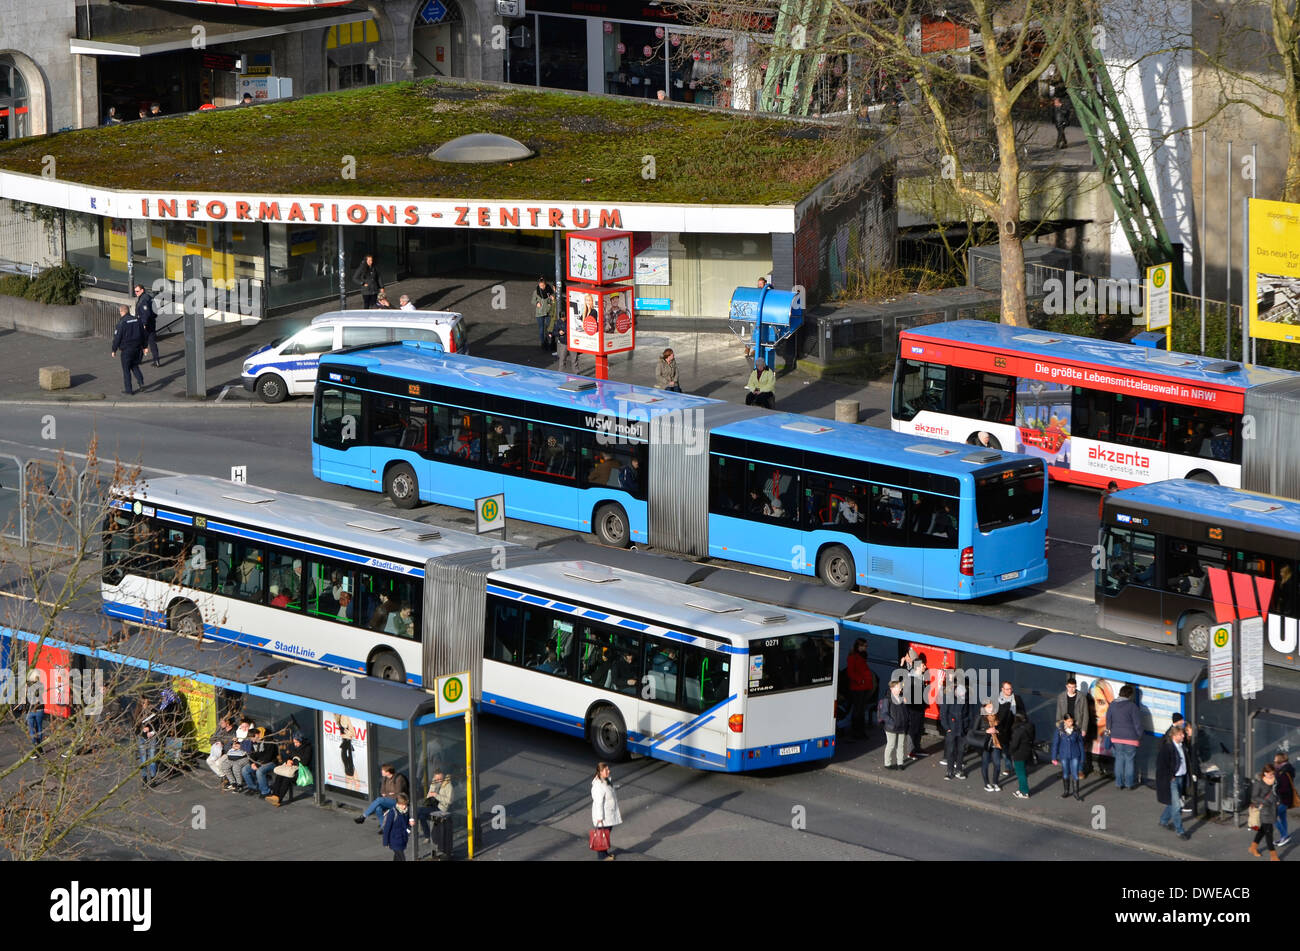 Wuppertal Zentrum showing the large bus station. Wuppertal Zentrum, die die großen Busbahnhof. - Stock Image